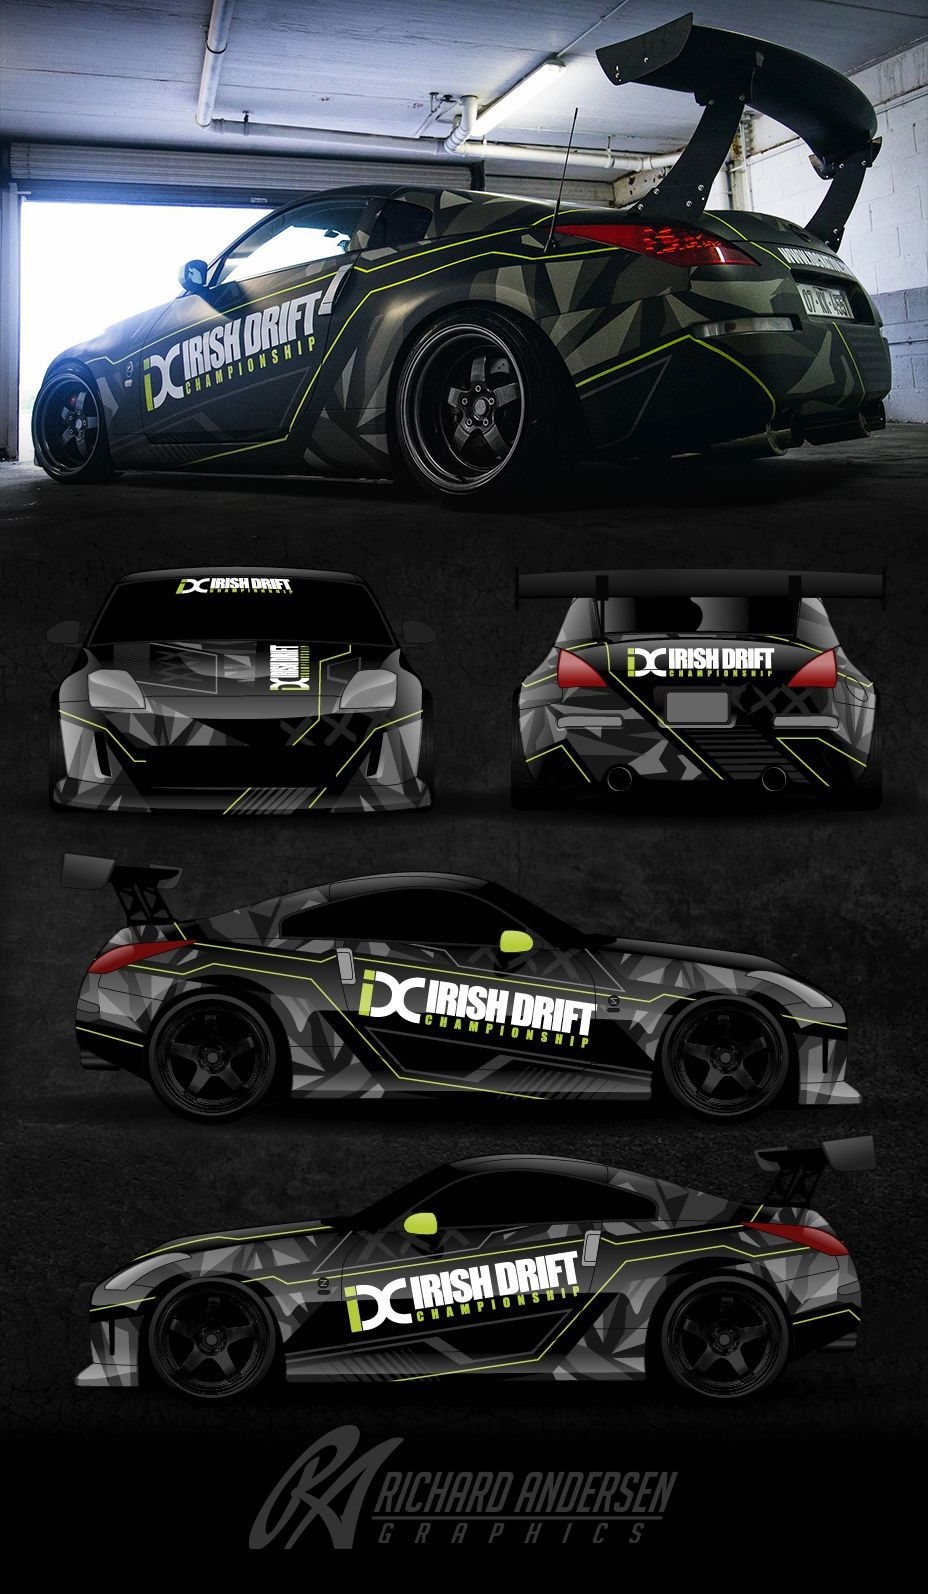 Wrap design by richard andersen https ragraphics carbonmade com sticker vehicle wrapsgraphicsideasnissandesignadvertising